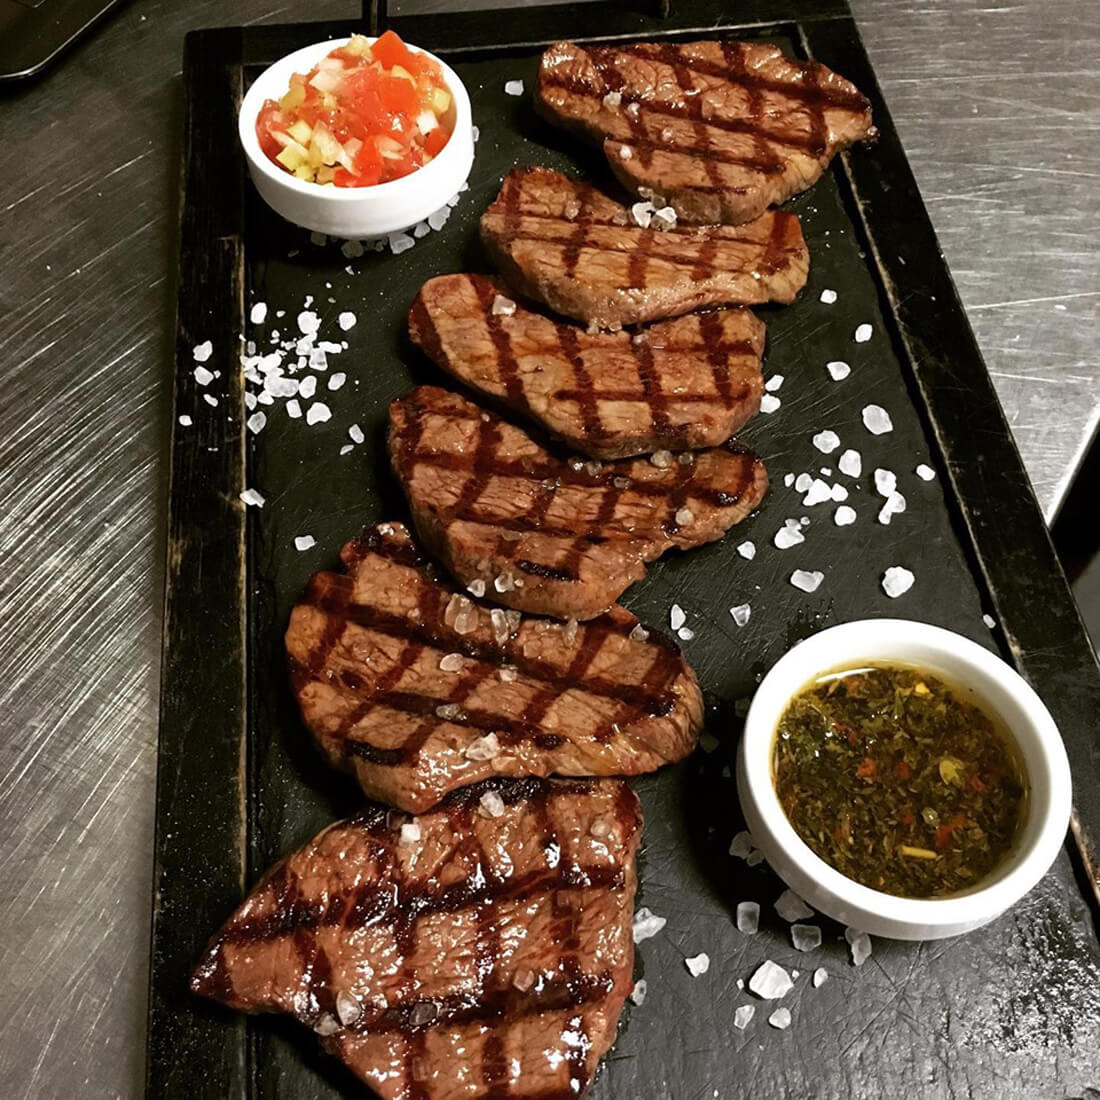 Picanha meat and more - εικόνα 1